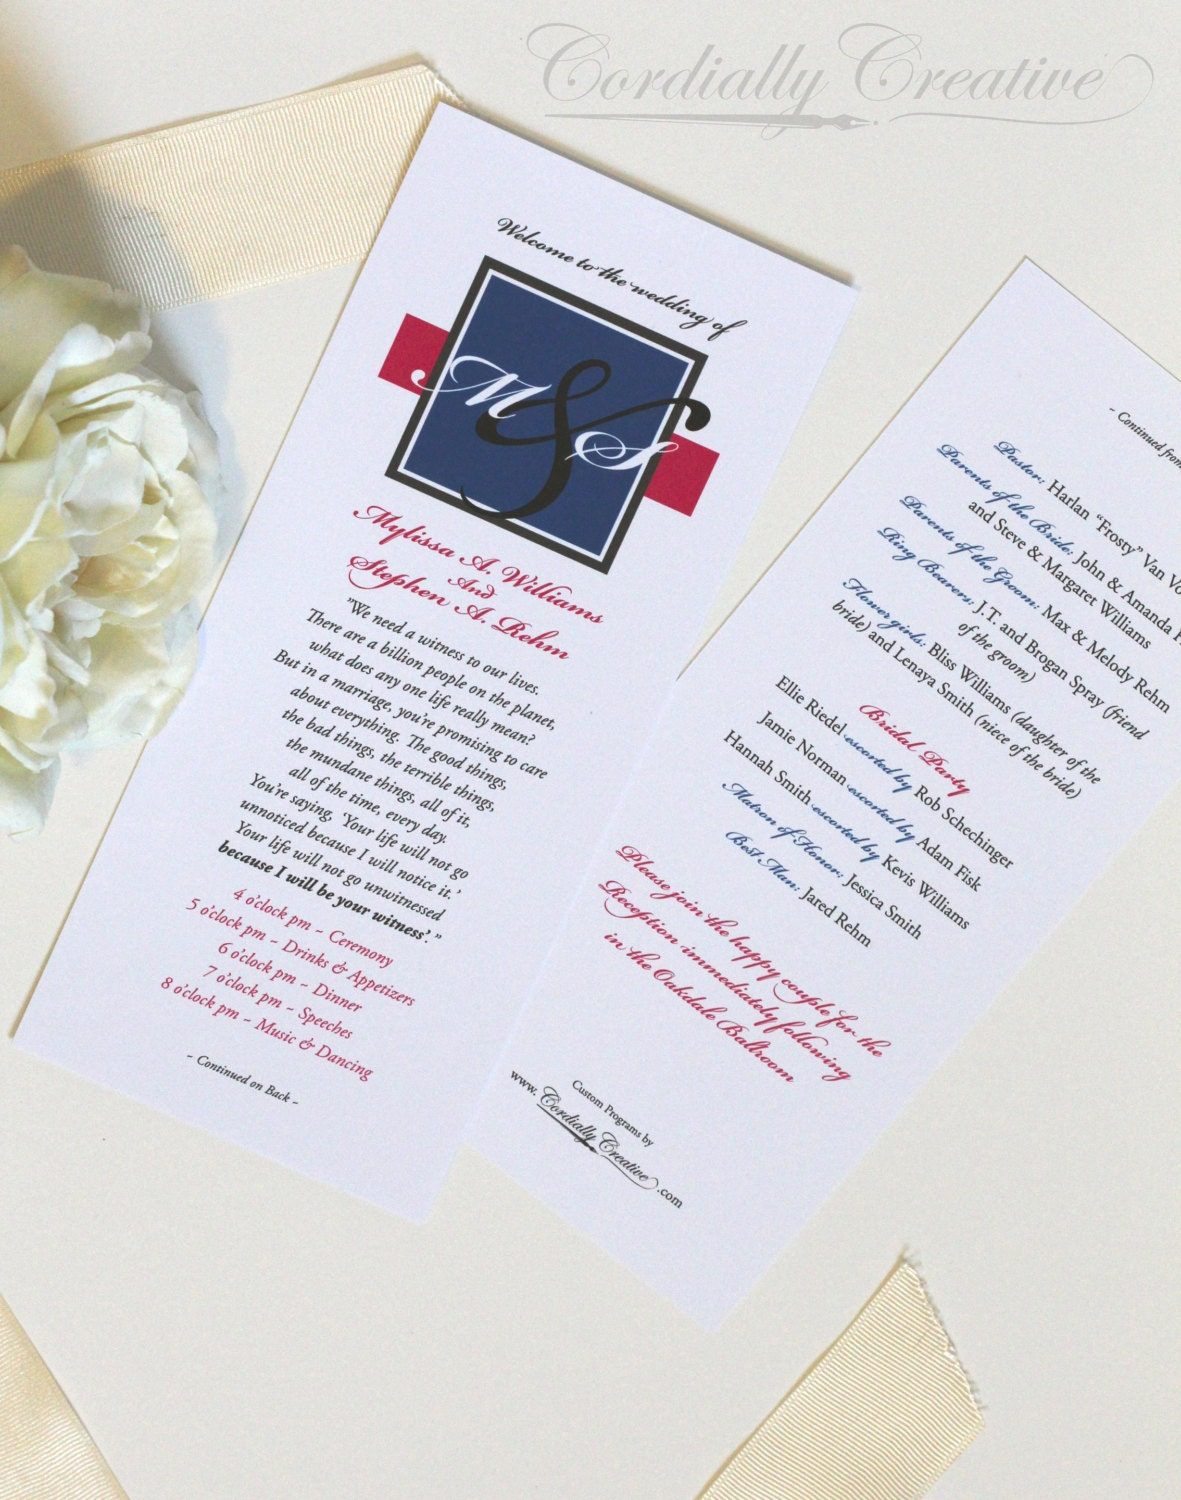 Wedding Programs Tall On White Card Stock Shown In The